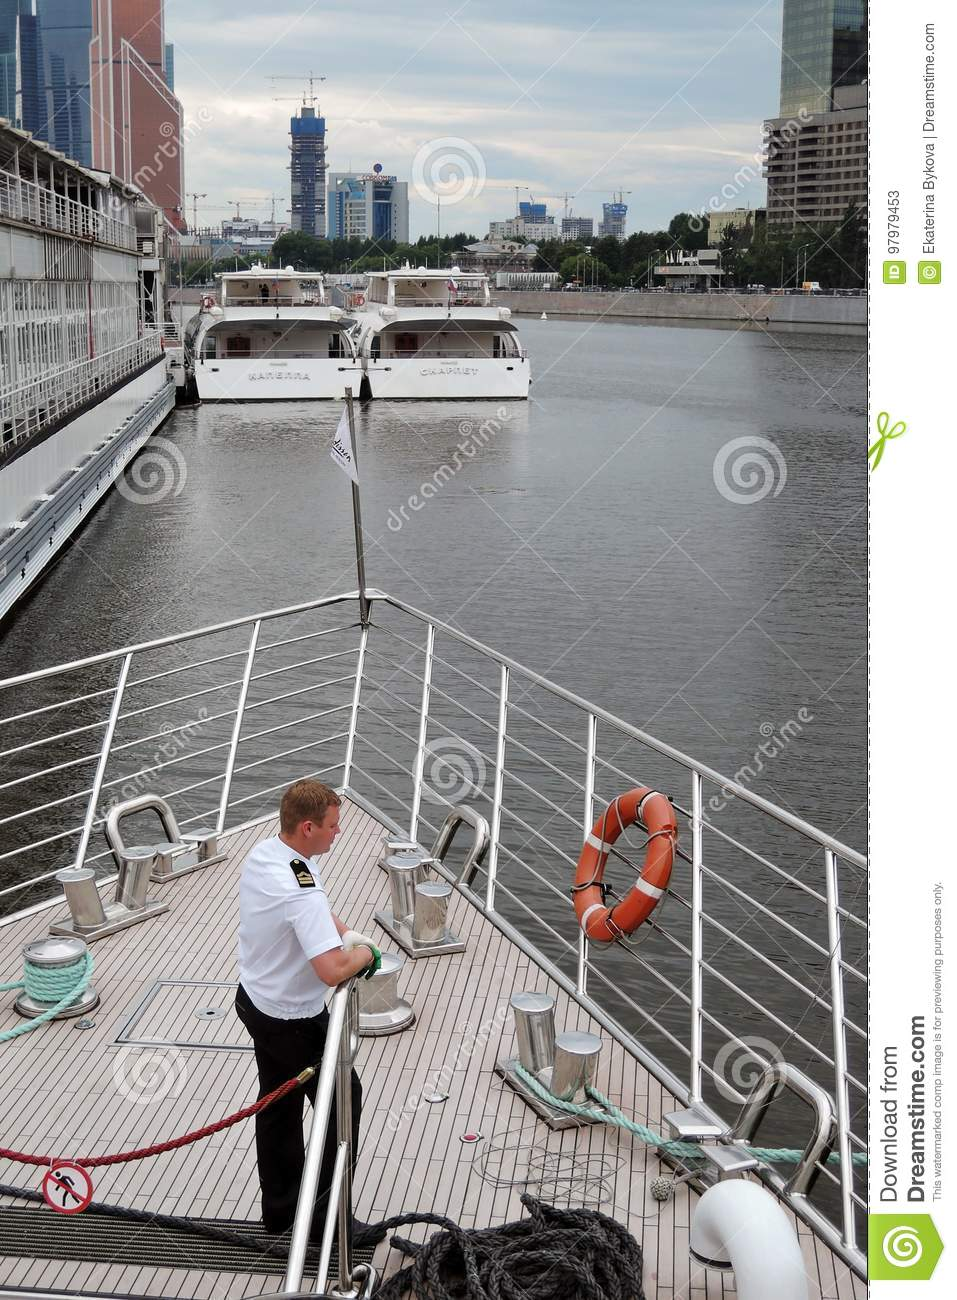 Cruise ship captain stands on a deck